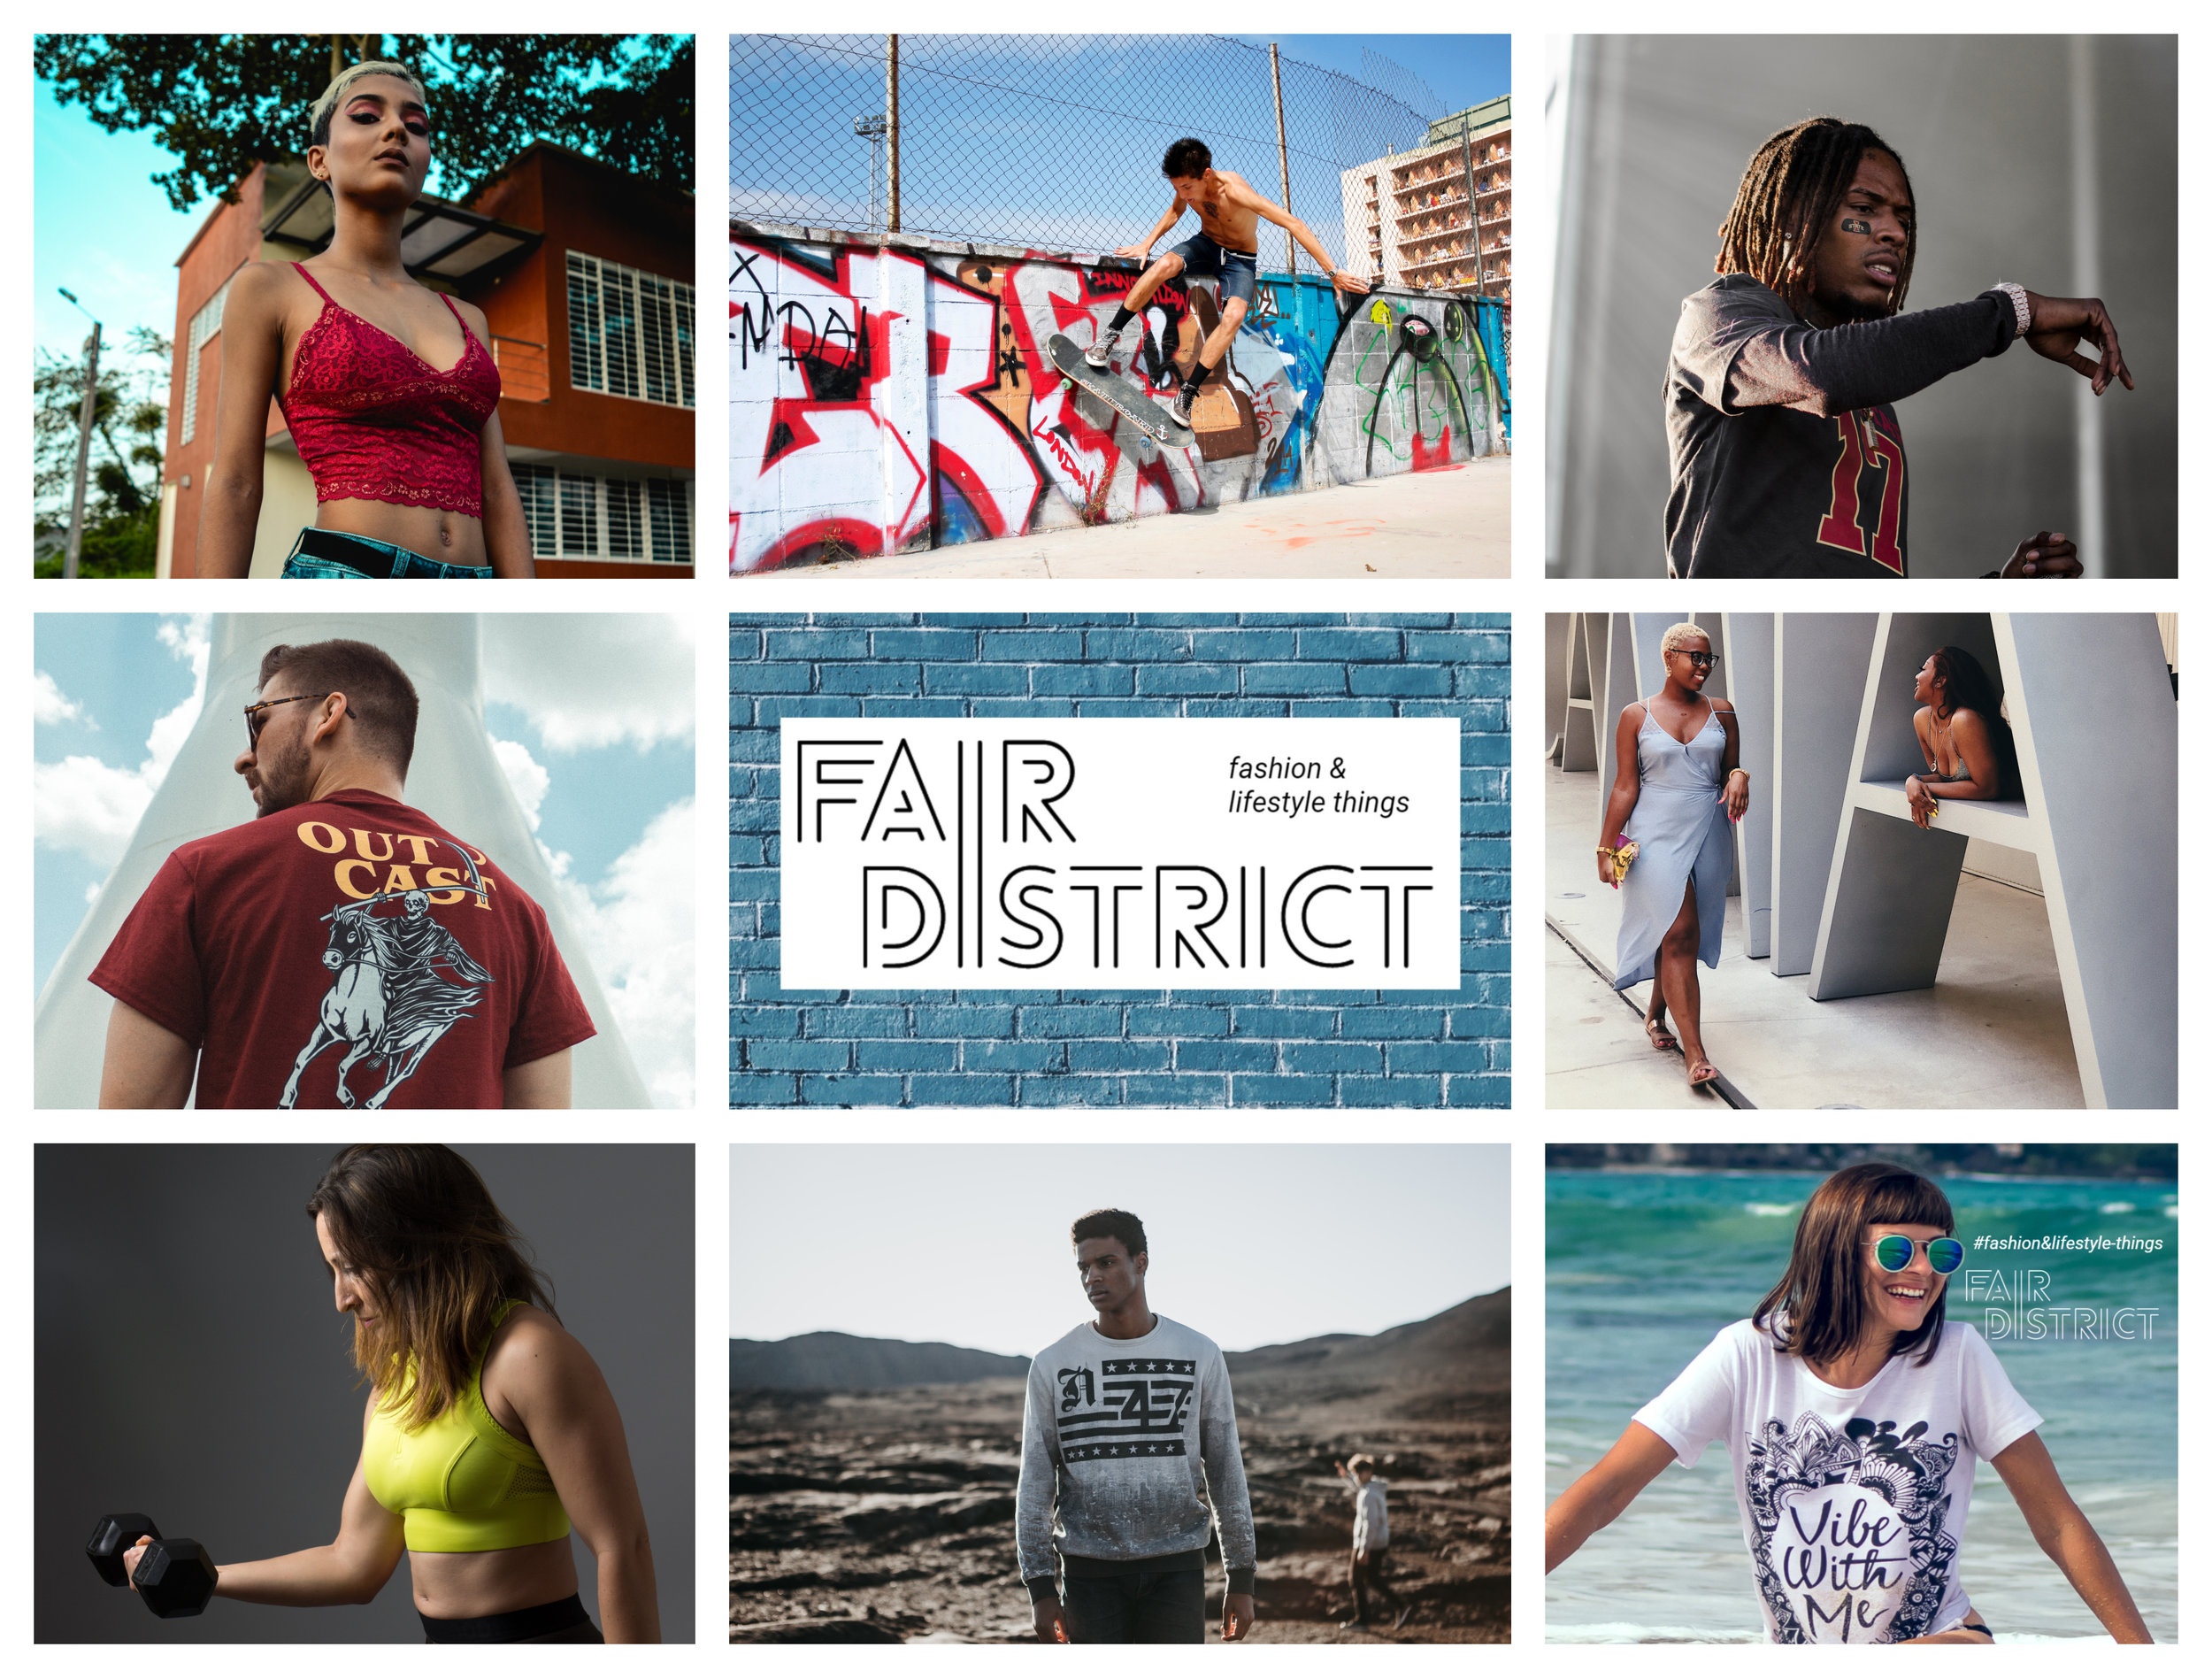 Our Story....  The idea of fairdistrict was born amongst a group of friends who are very passionate about life. Amongst them, you can count about two dozen active hobbies, from skydiving, to playing musical instruments (cello, piano, guitar, etc.), camping, globe trotting, fashion, etc.  And, while spending time together on a beach in California, it dawned on them, that there were no dedicated places (websites, mobile apps, etc.) for people like them to trade with other passionate people - A place where they can exchange ideas and trade fashion & lifestyle items with people of similar preferences.  And this is basically how FAIRDISTRICT was born...  So, what is fairdistrict?  Fairdistrict is a trading platform for fashion & lifestyle-items. It is a place where passionate people from all over the world can buy, sell, or exchange items & ideas that fit them.  So, who are we?  We are a group of passionate individuals whose sole mission in life is to help you live more passionately. We are fashionista's, campers, travelers, photographers, dj's, singers, rappers, producers, athletes, readers, socialites, beach bums, nerds, book worm's, surfers, etc. We believe that happiness is based on what you spend your time doing and not on how much money you have or pointless possessions. We believe that people who are high on life are the happiest people in the world; and that is why we've decided to create fairdistrict to help achieve that mission - A place for people who want to live passionately and help make each other happy.  So, long story short…  Welcome to Fairdistrict!!!  Fashion & lifestyle-items that fit you is almost here...  Stay tuned - We are COMING SOON!  Get 30% OFF on your first purchase if you SIGN UP today at  www.fairdistrict.com   Follow us on facebook, twitter, instagram, tumblr  Let us know your thoughts on our facebook page  Join the movement on our facebook community page  Follow our blog on  https://www.fairdistrict.com/blog